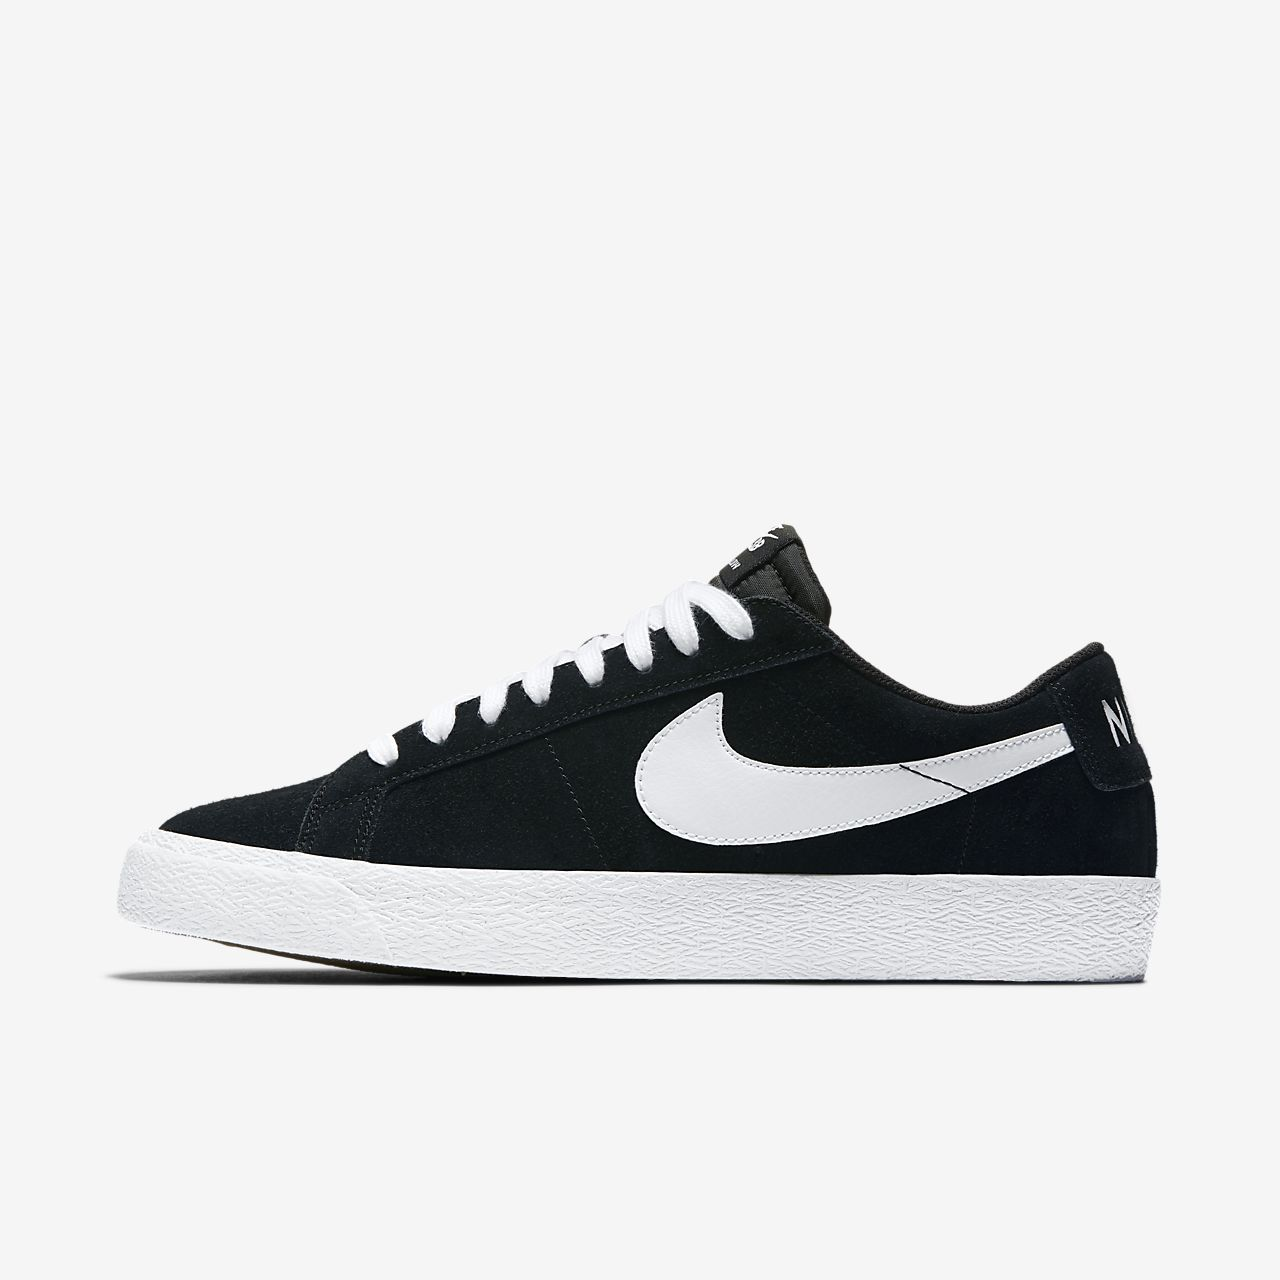 Nike SB Blazer Zoom Low skatesko for herre